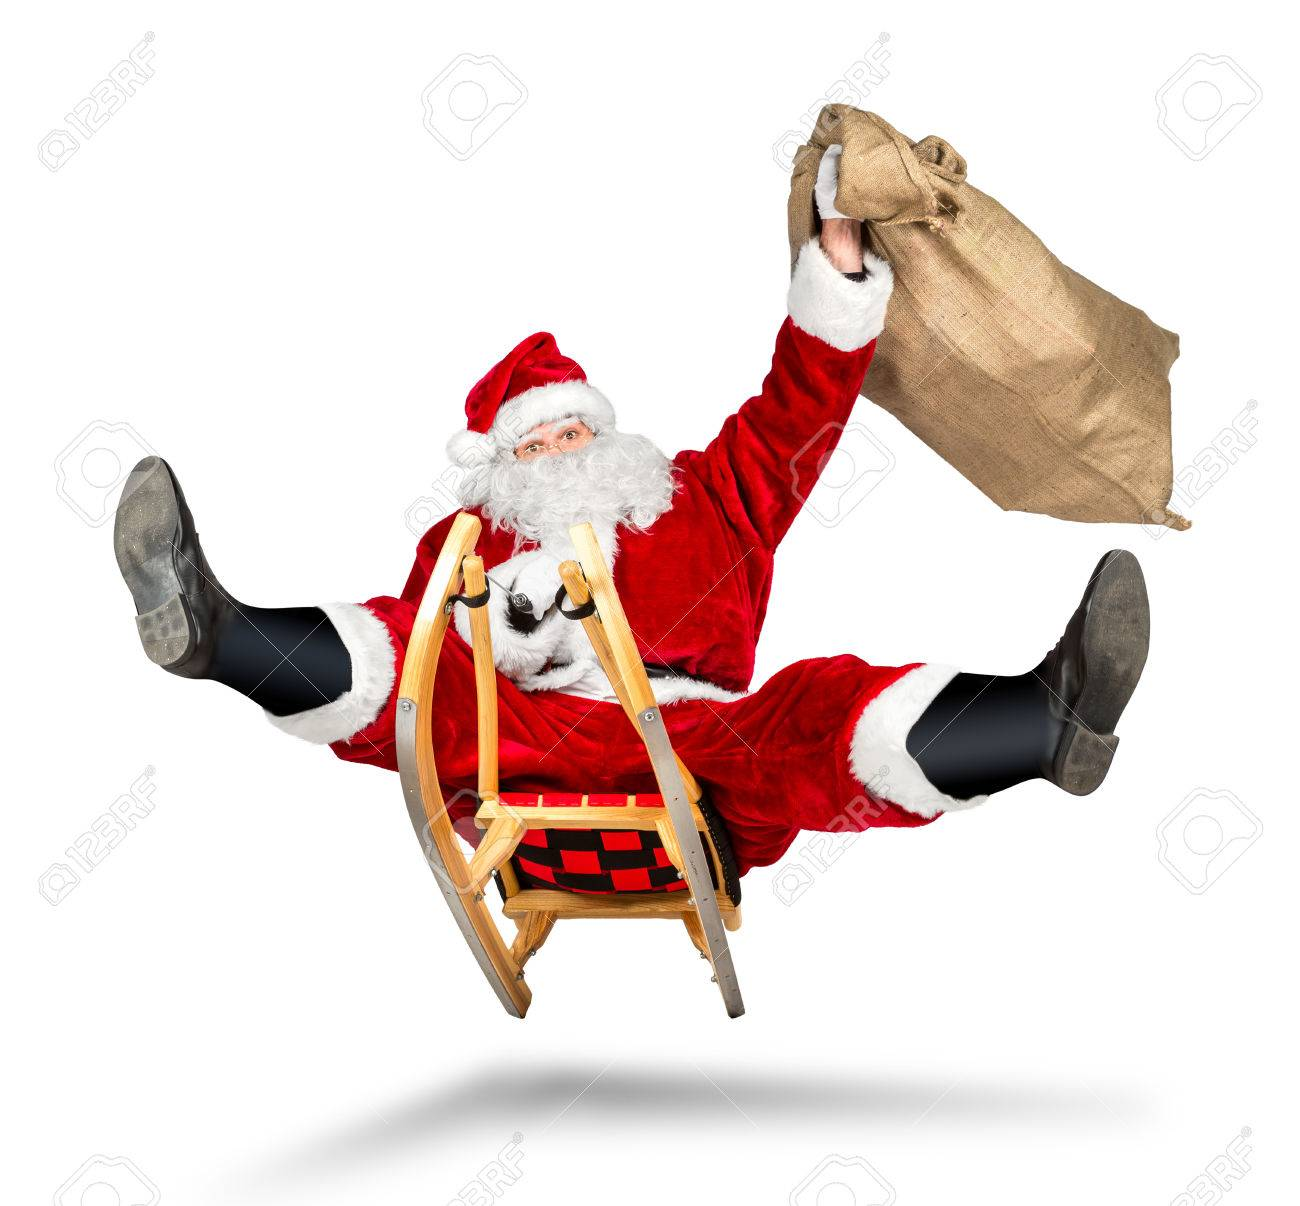 crazy santa claus on his sleigh hilarious fast funny crazy xmas christmas gift present delivery isolated white background - 68607669